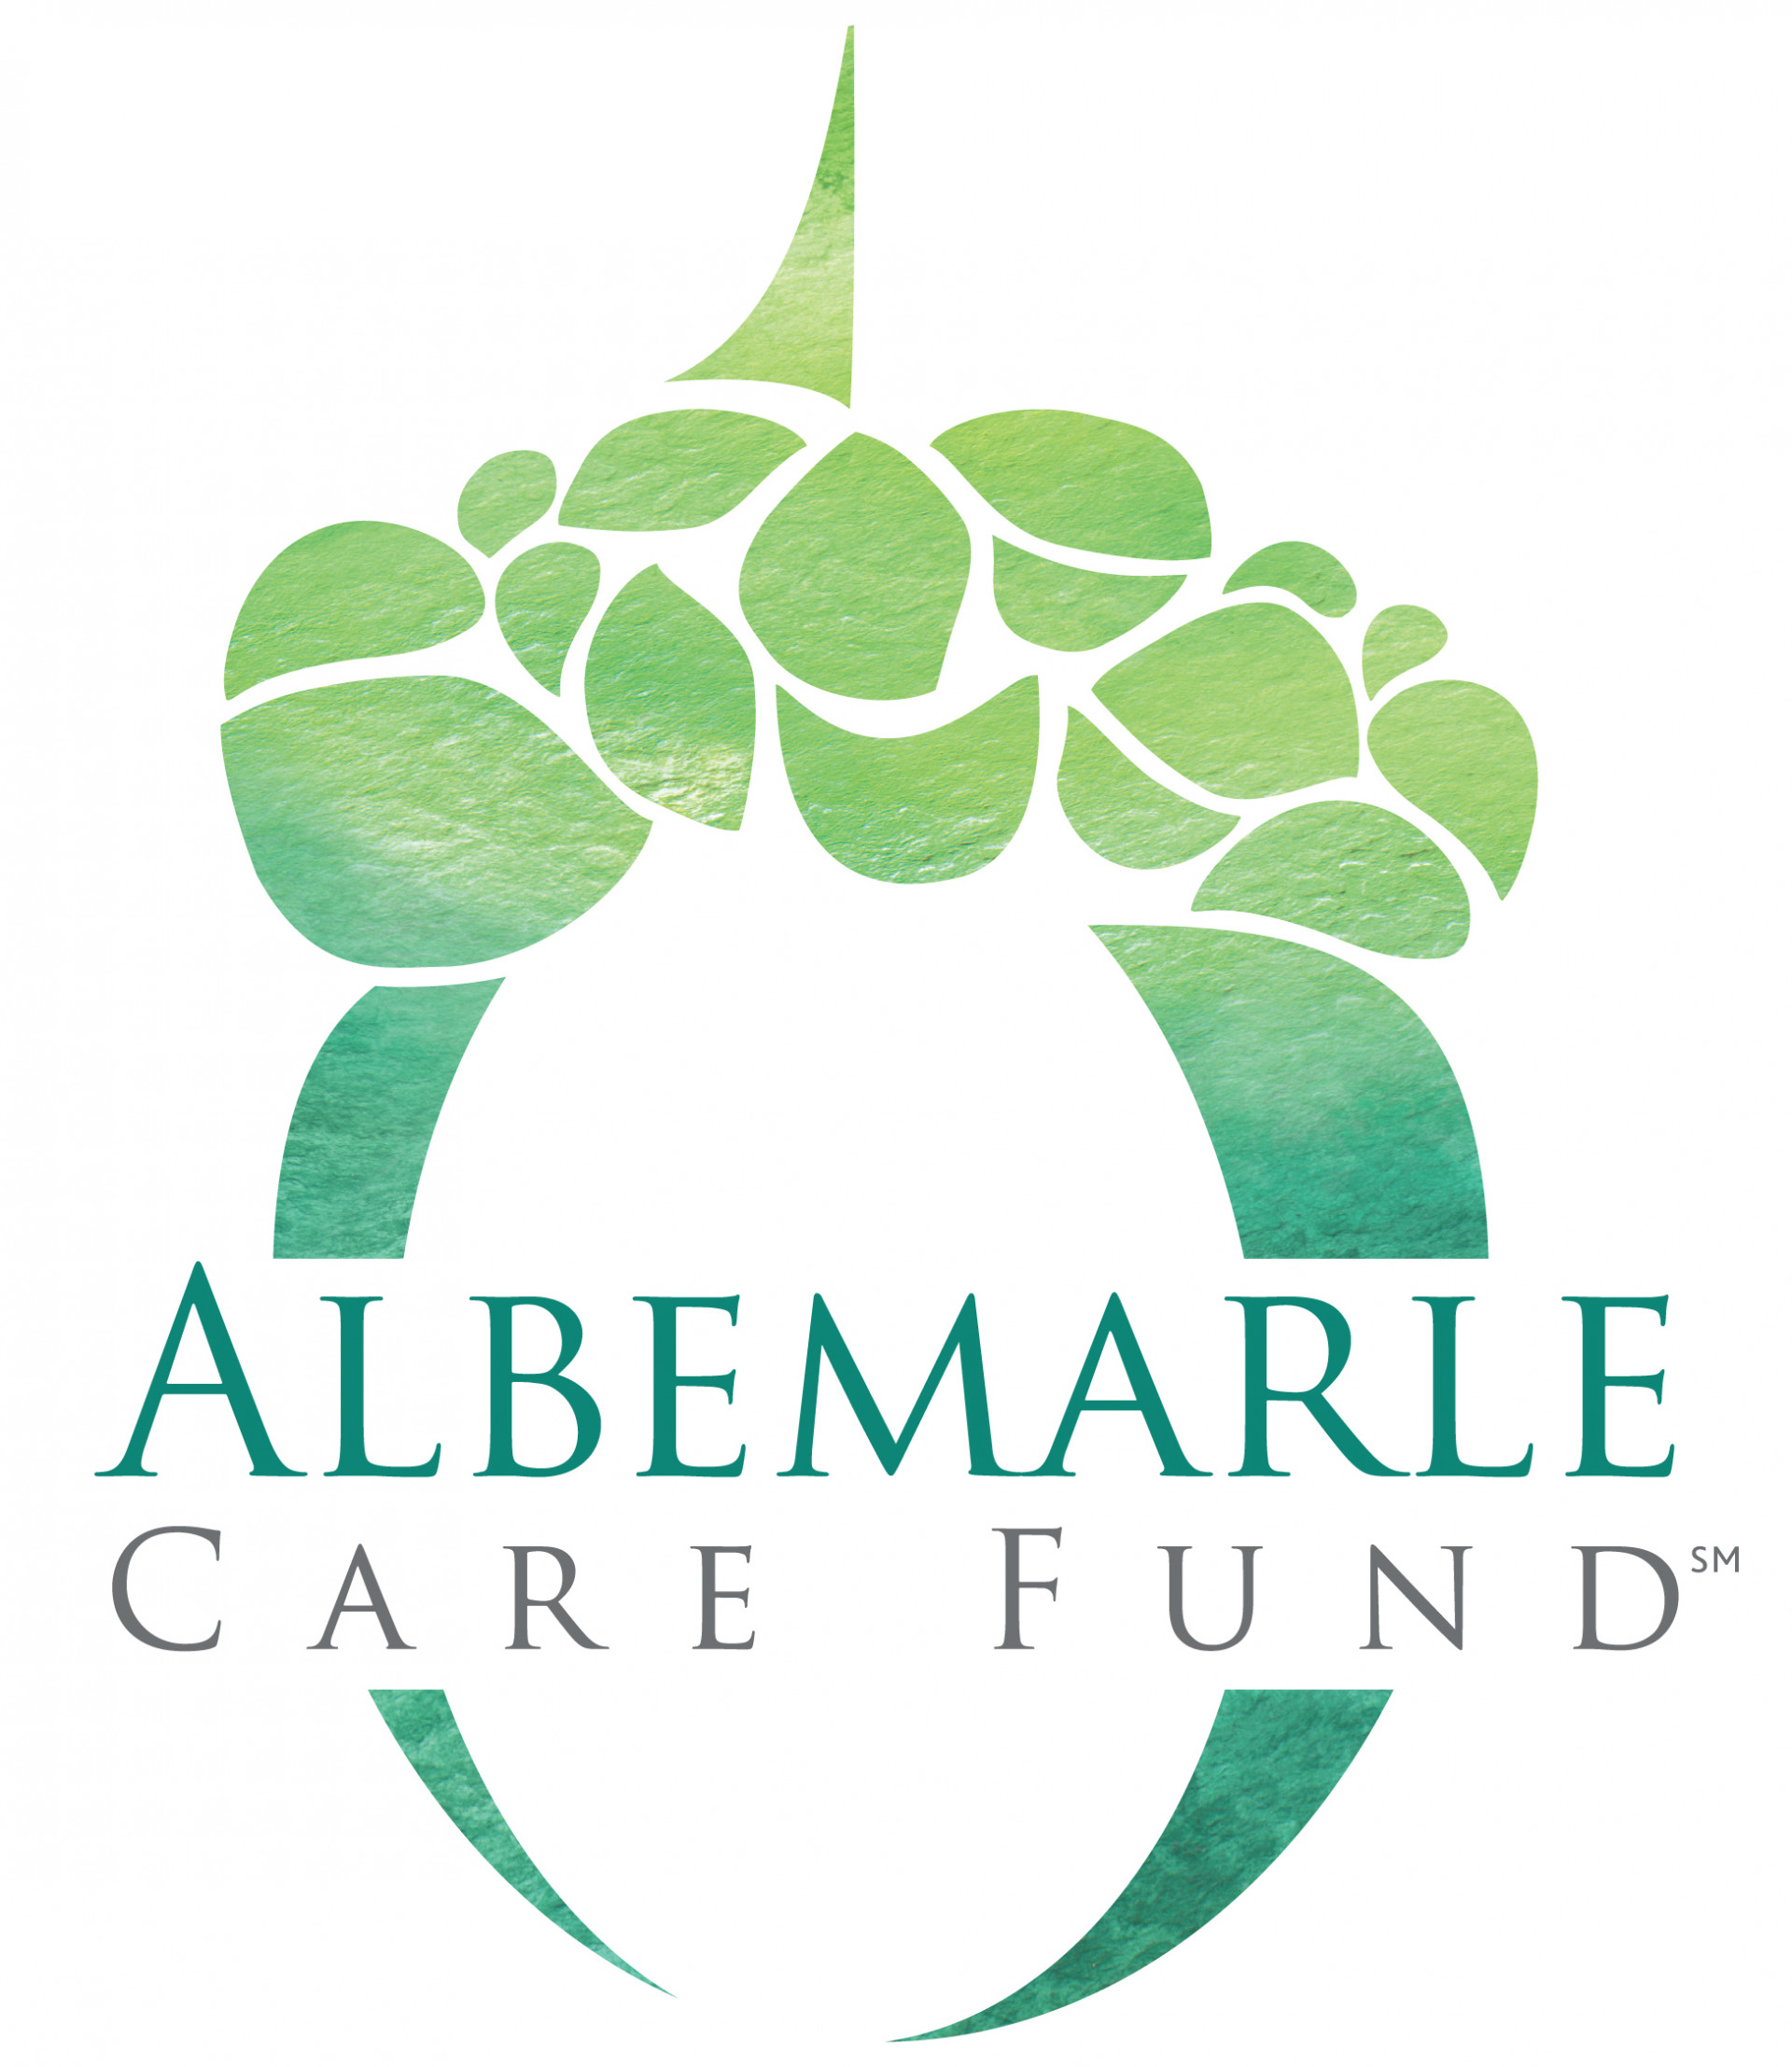 Albemarle Care Fund